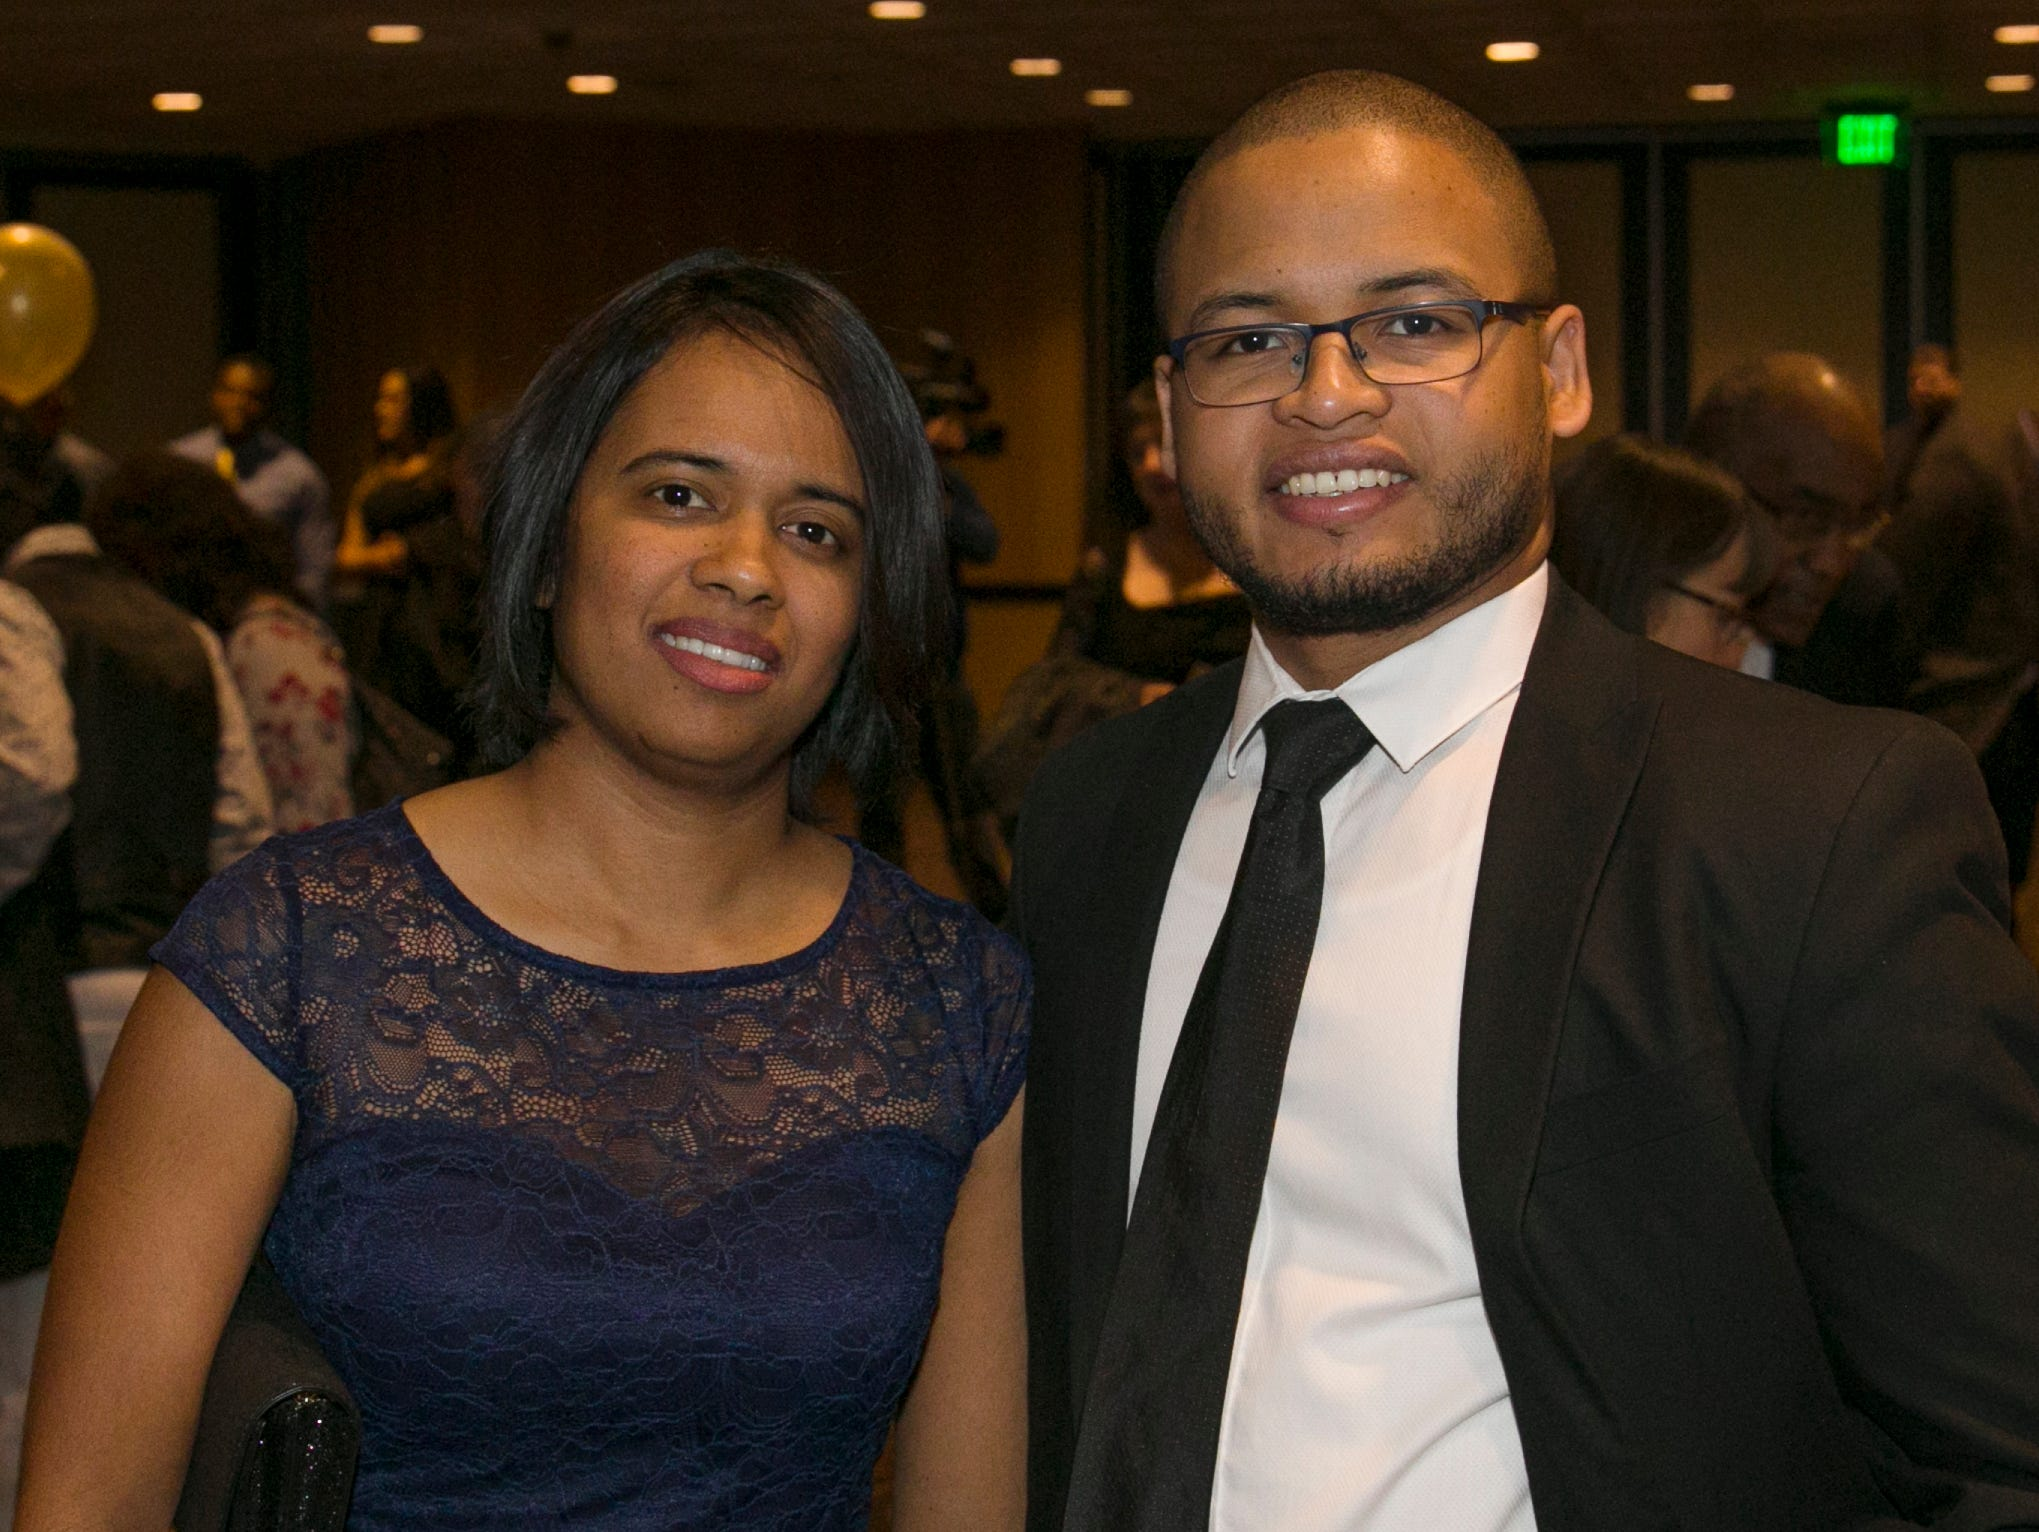 Sylvana and Neat Randriamialison during the 31st Annual Martin Luther King, Jr. Birthday Celebration Dinner at the Atlantis Casino Resort Spa on Monday, January 21, 2109 in Reno, Nevada.